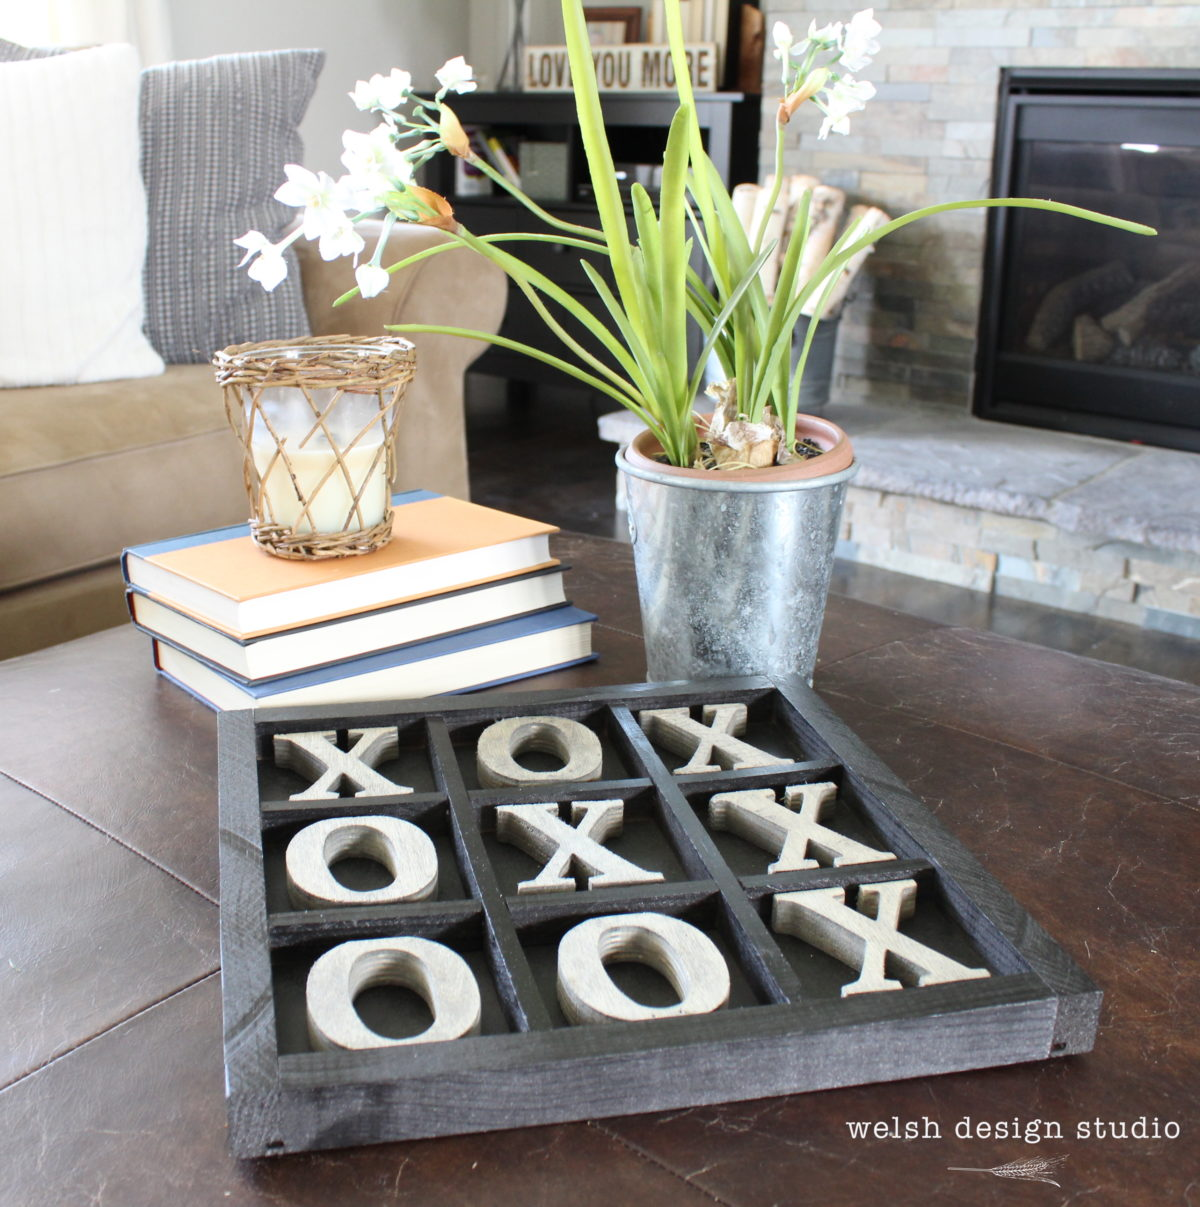 Diy Rustic Tic Tac Toe Board Welsh Design Studio